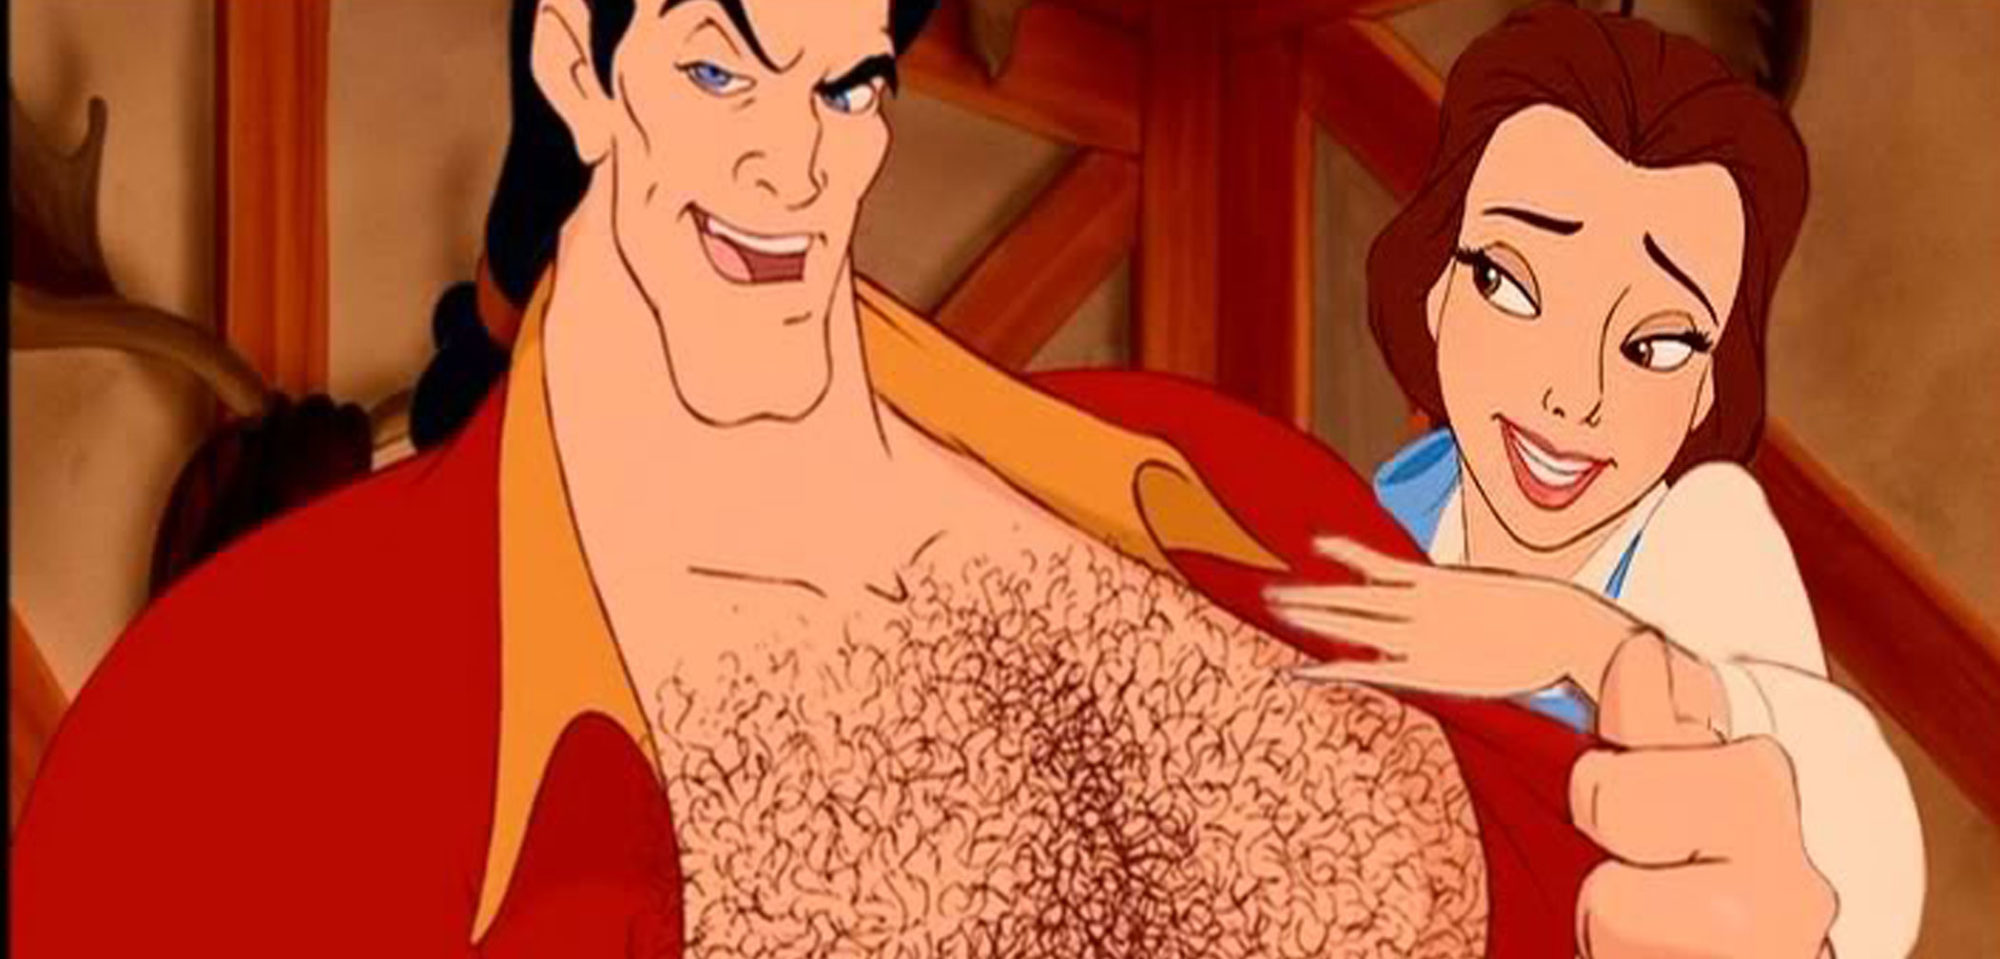 sexy gaston art Beauty and the Beast 01